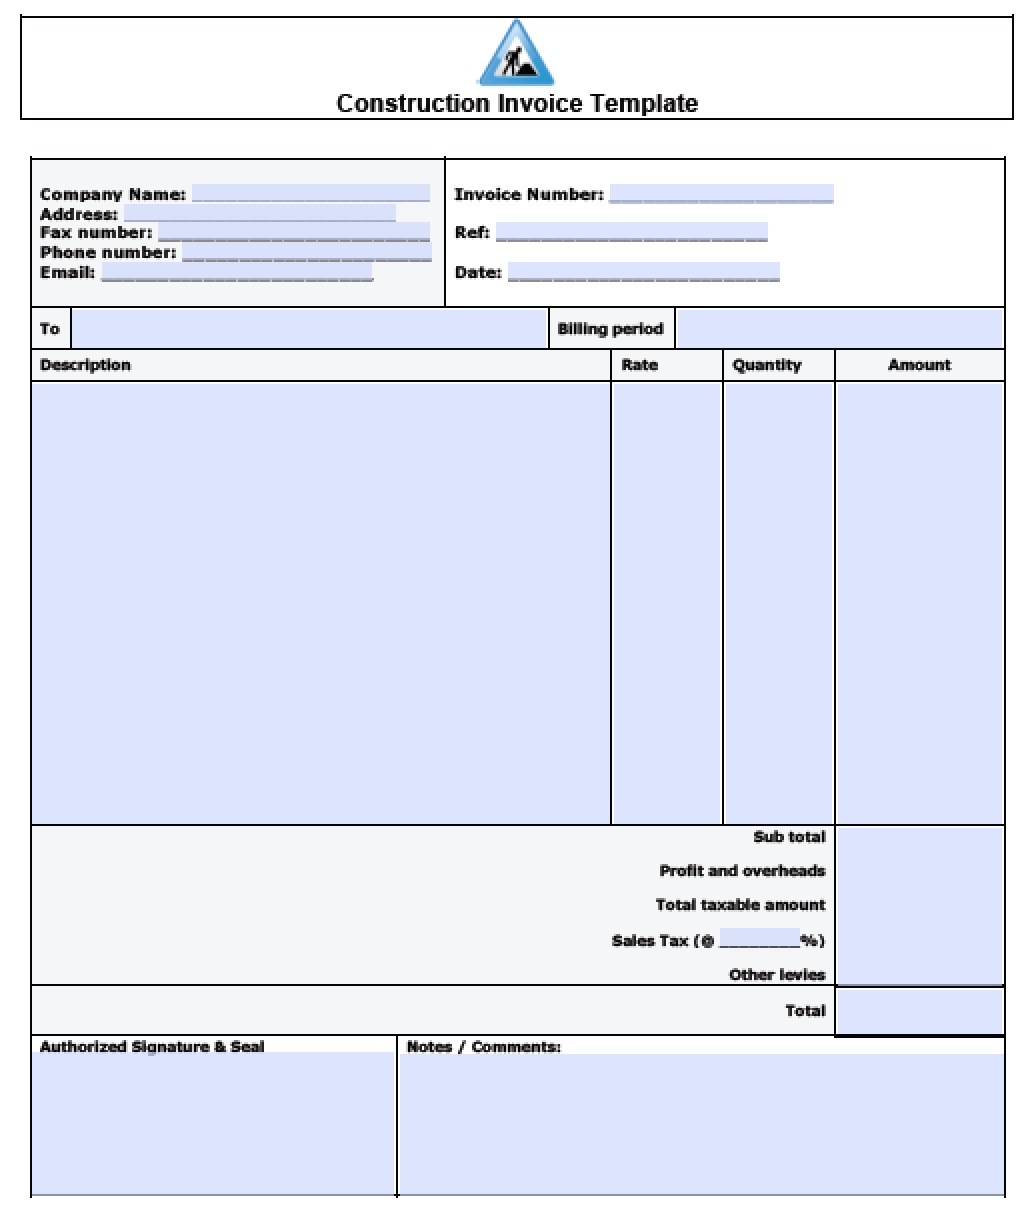 Free Construction Invoice Template Excel PDF Word Doc - Masonry contract template